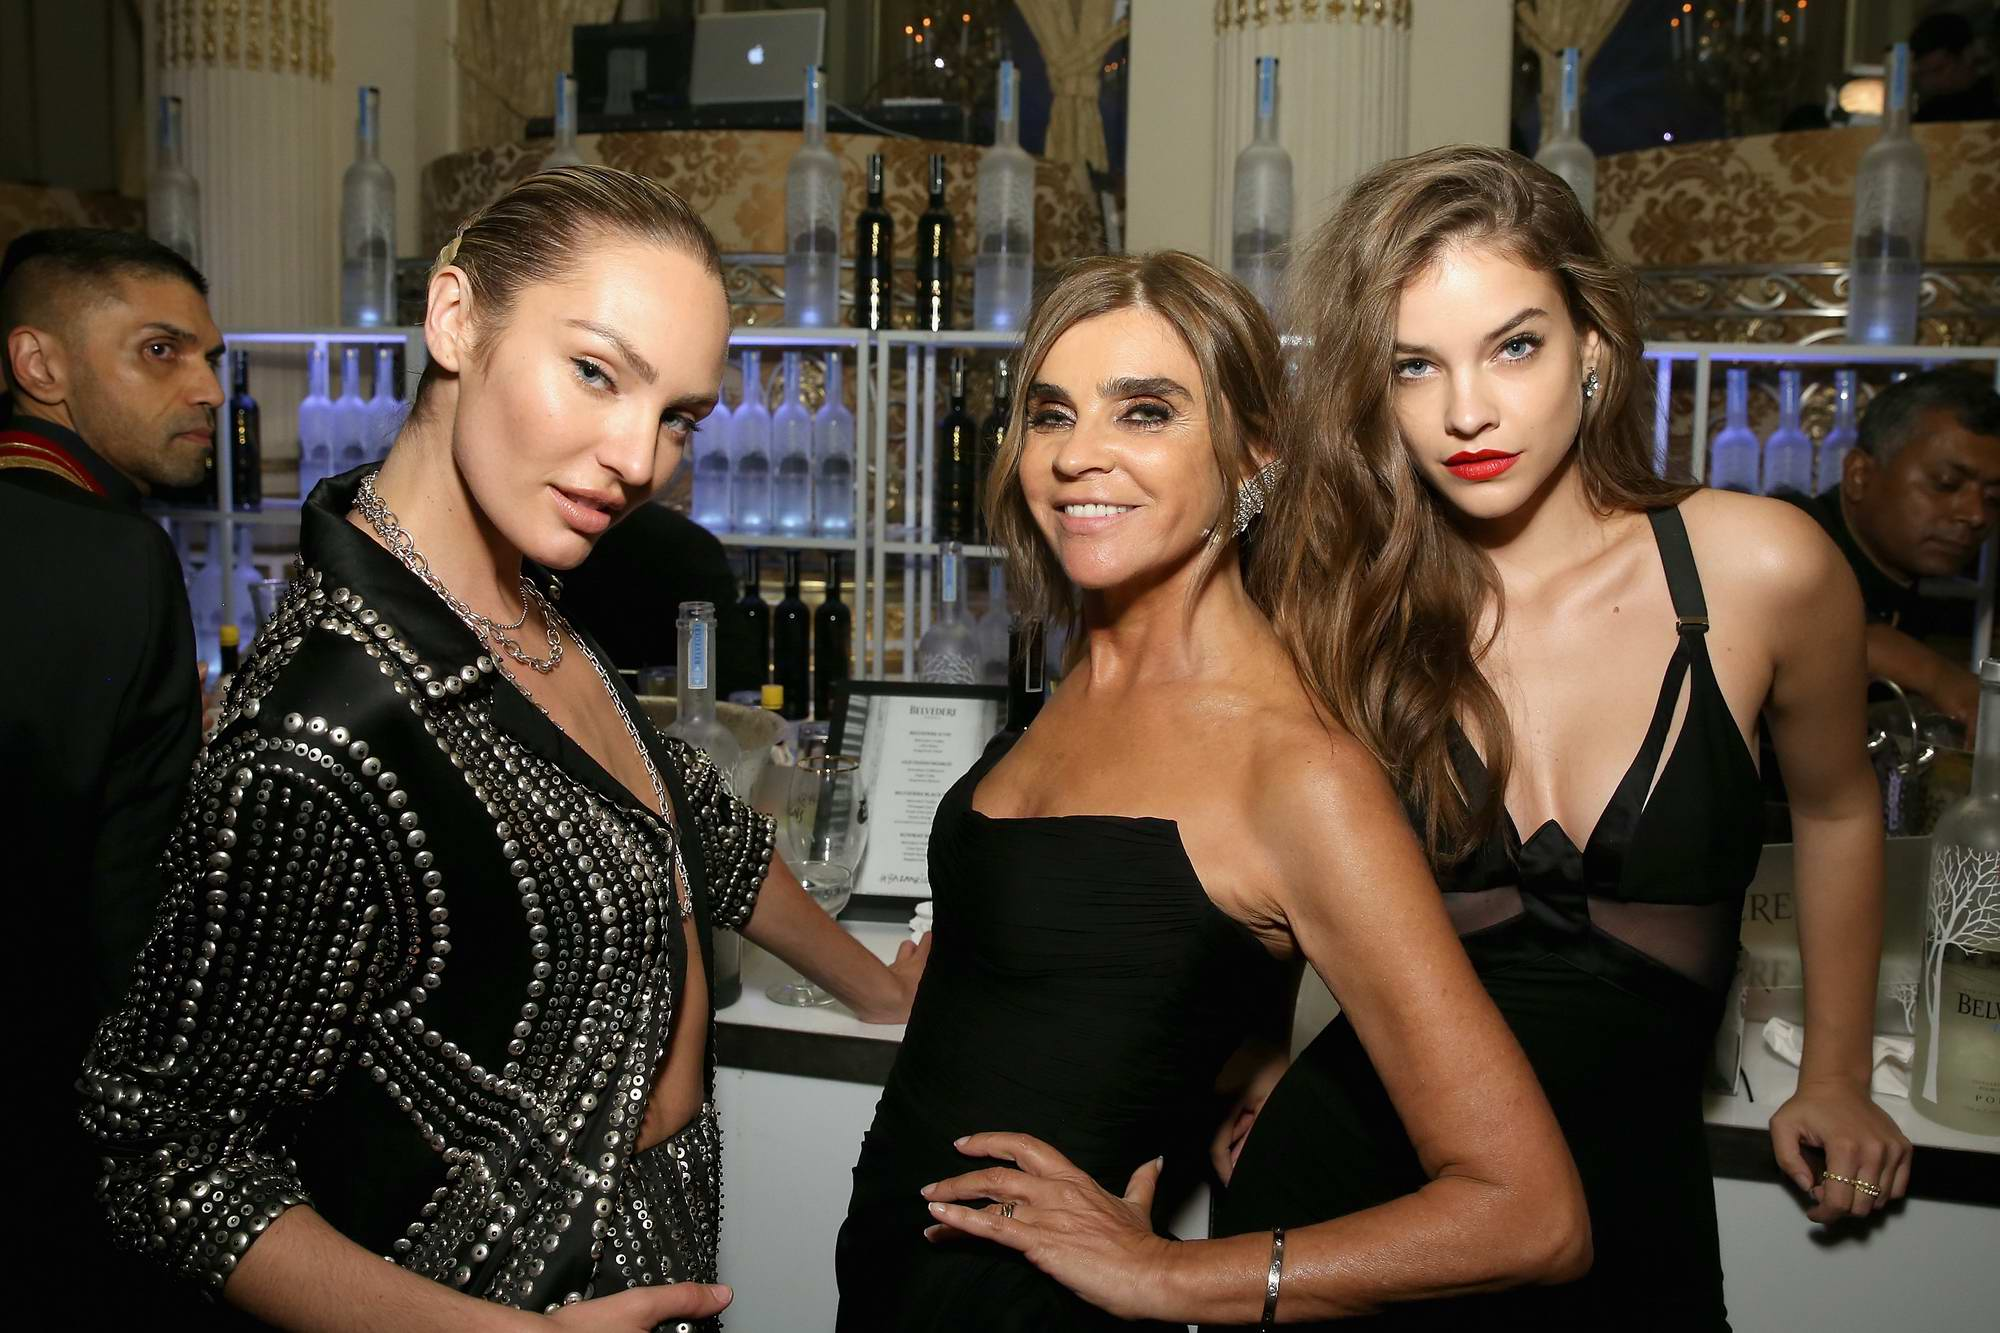 Barbara Palvin and Candice Swanepoel at the Harper's Bazaar ICONS party at New York Fashion Week